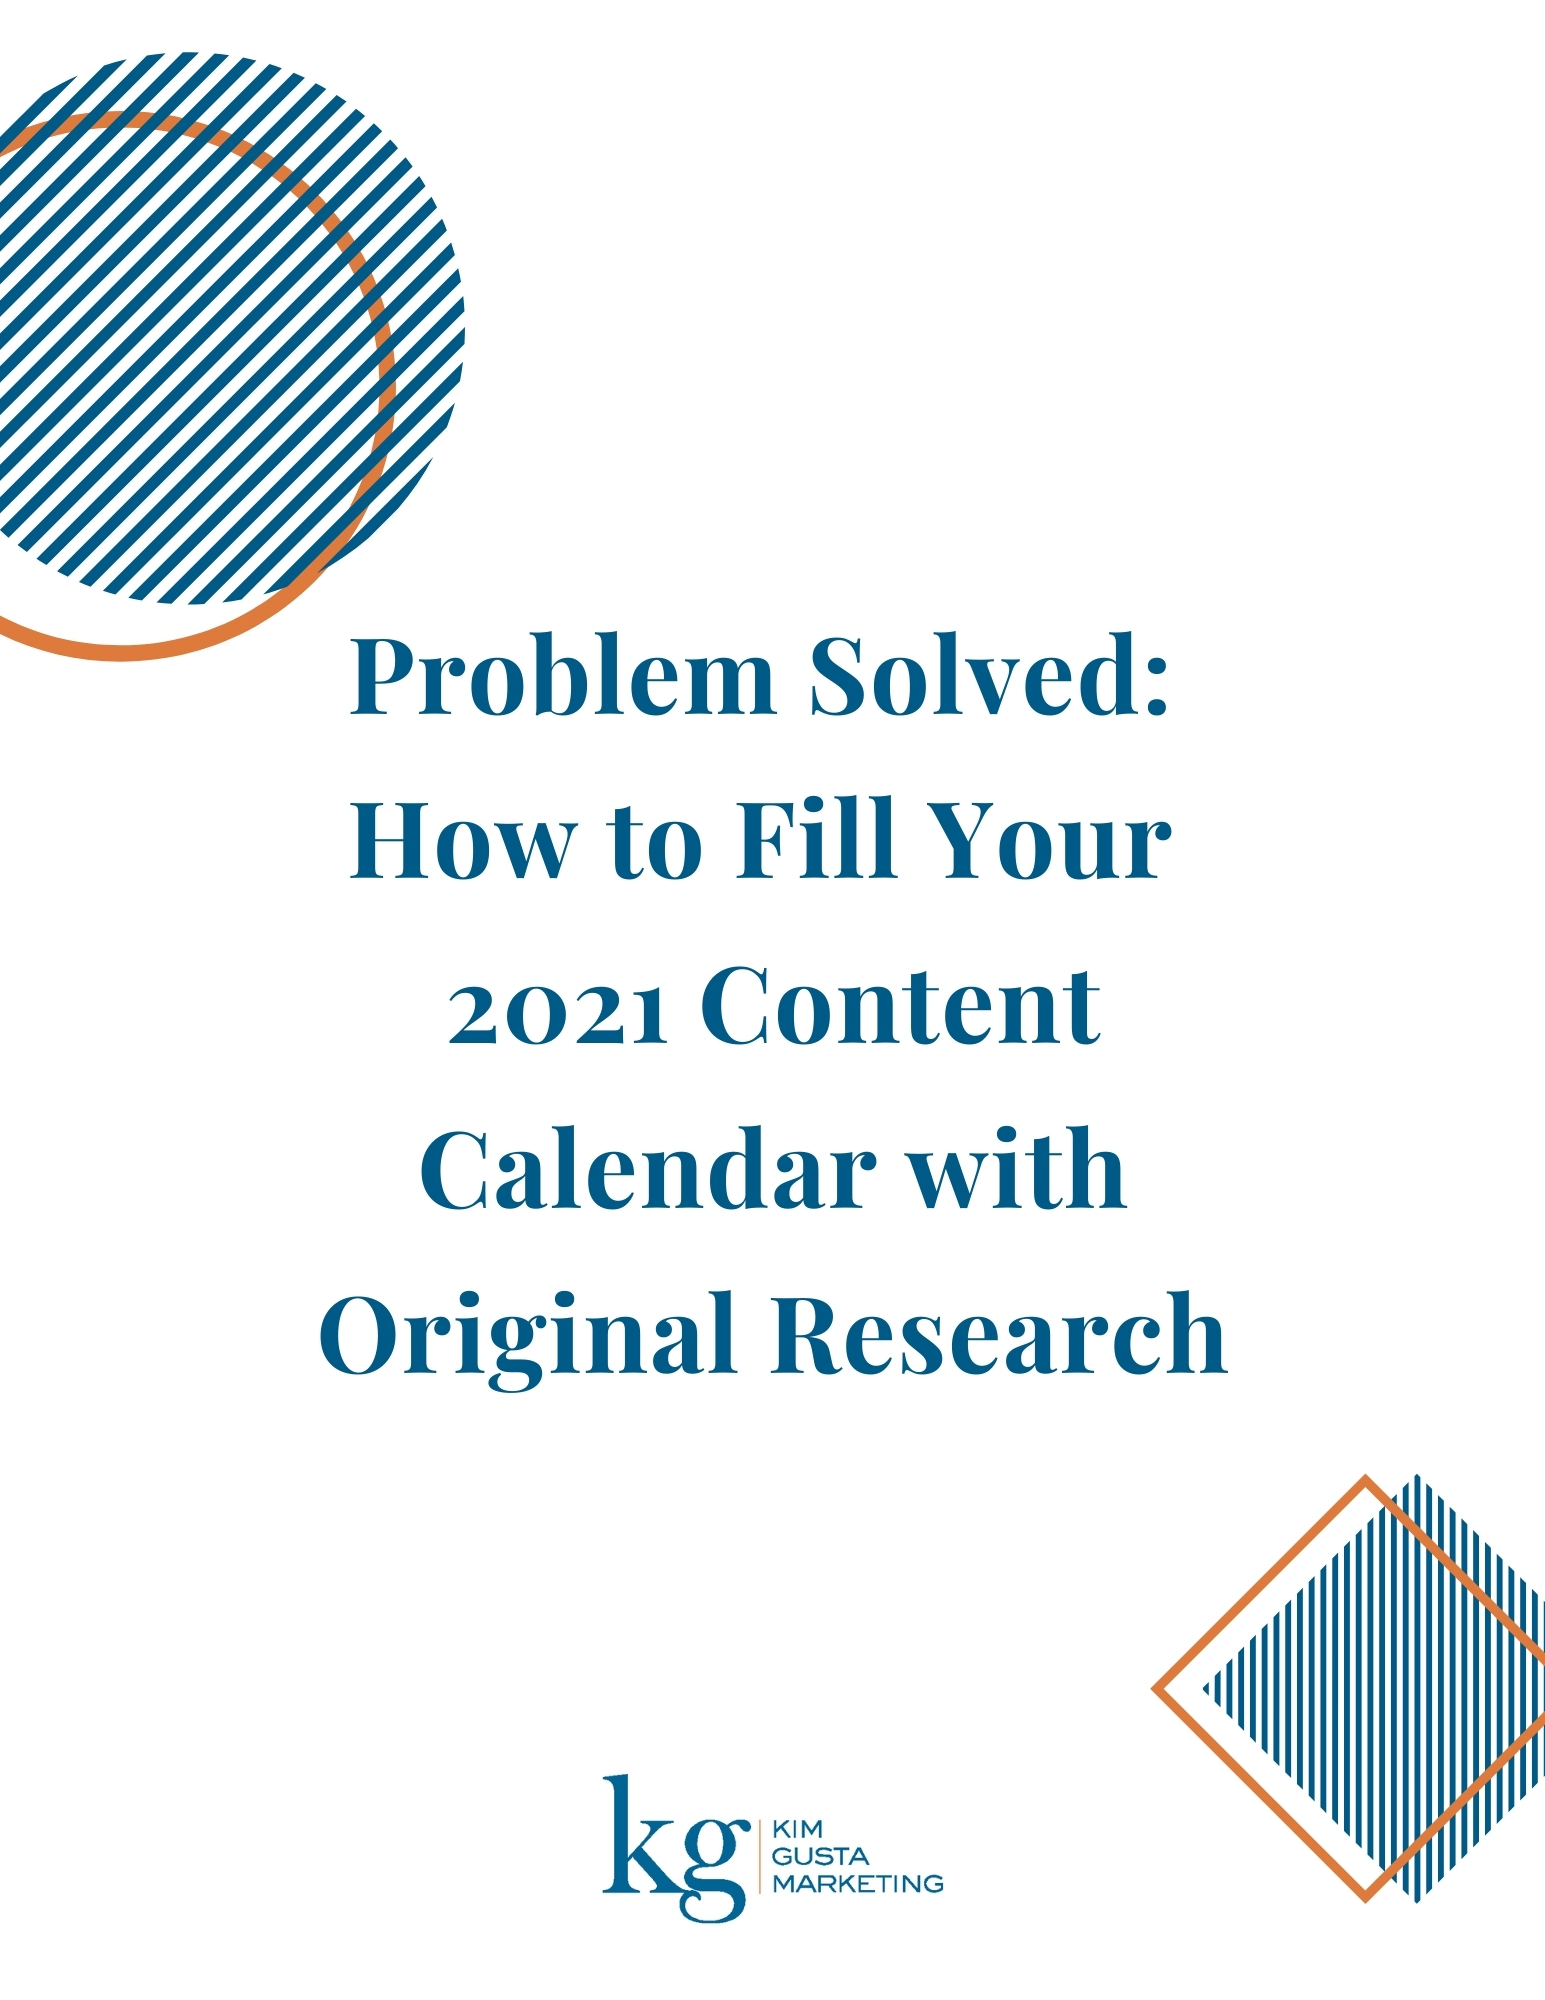 Problem Solved: How to Fill Your 2021 Content Calendar with Original Research